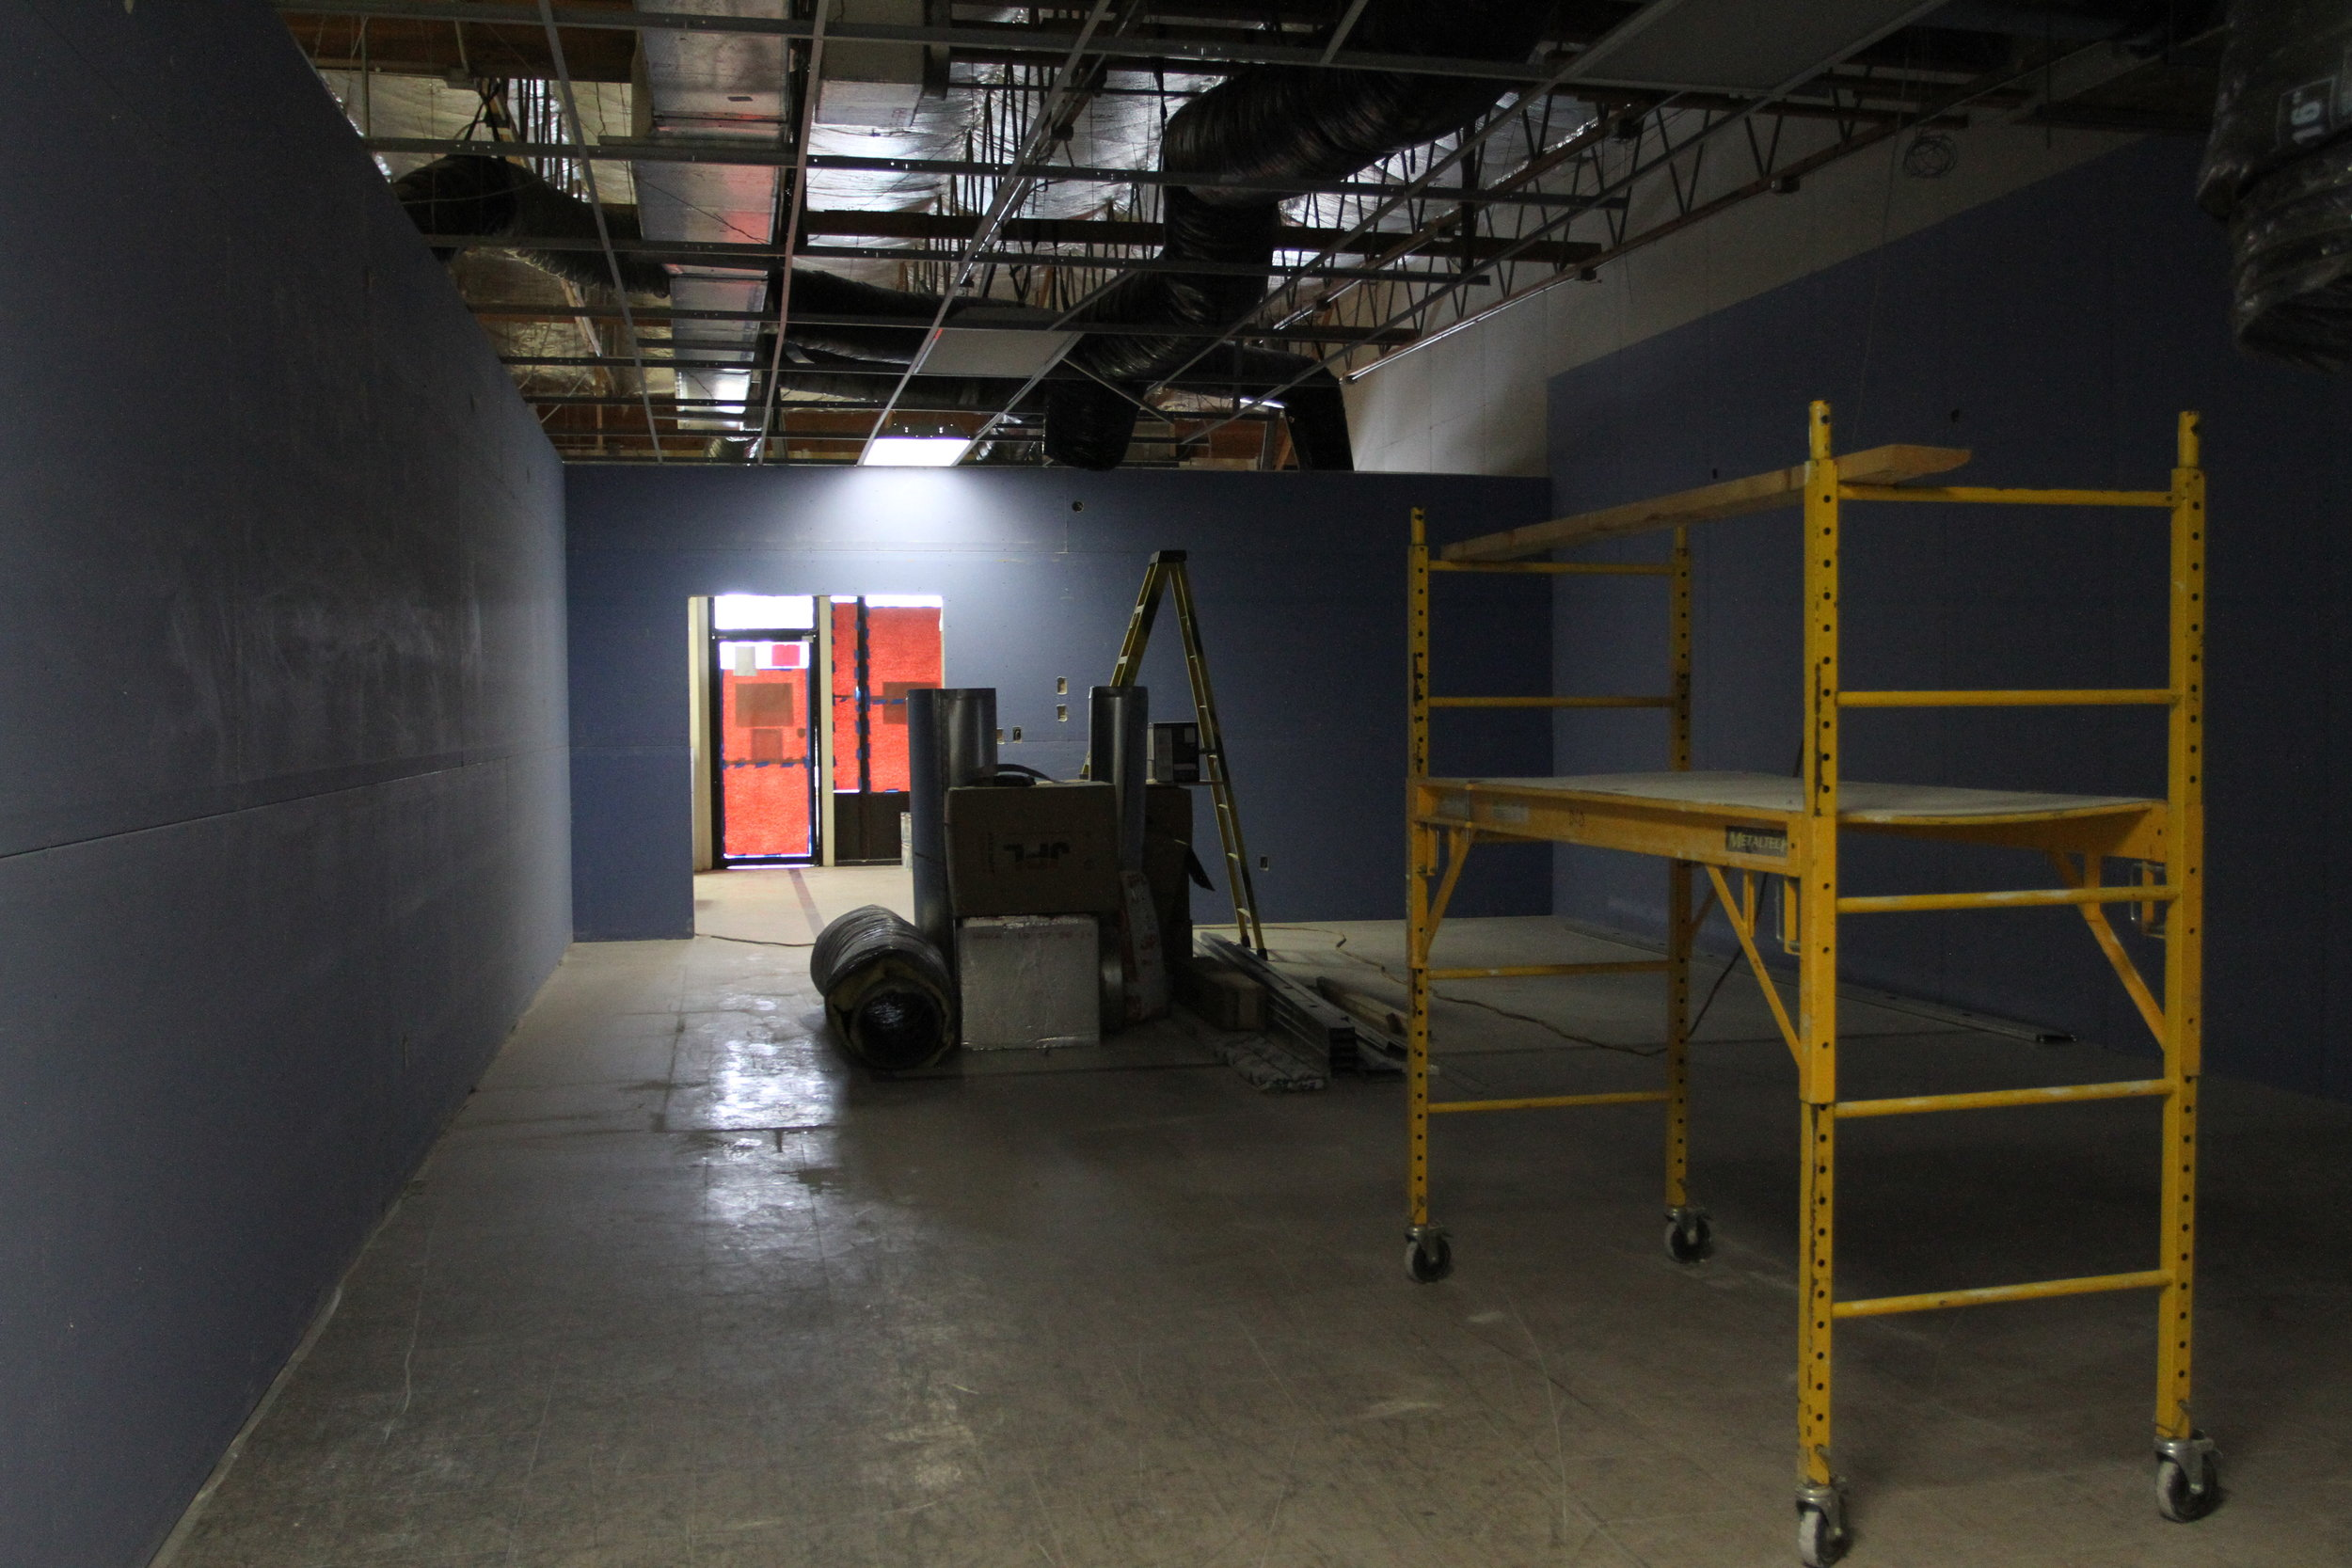 Still in the process of being built, the studio walls are made of special moisture-resistant drywall to keep up with the sweat and heat. One wall will be covered in floor to ceiling mirrors.